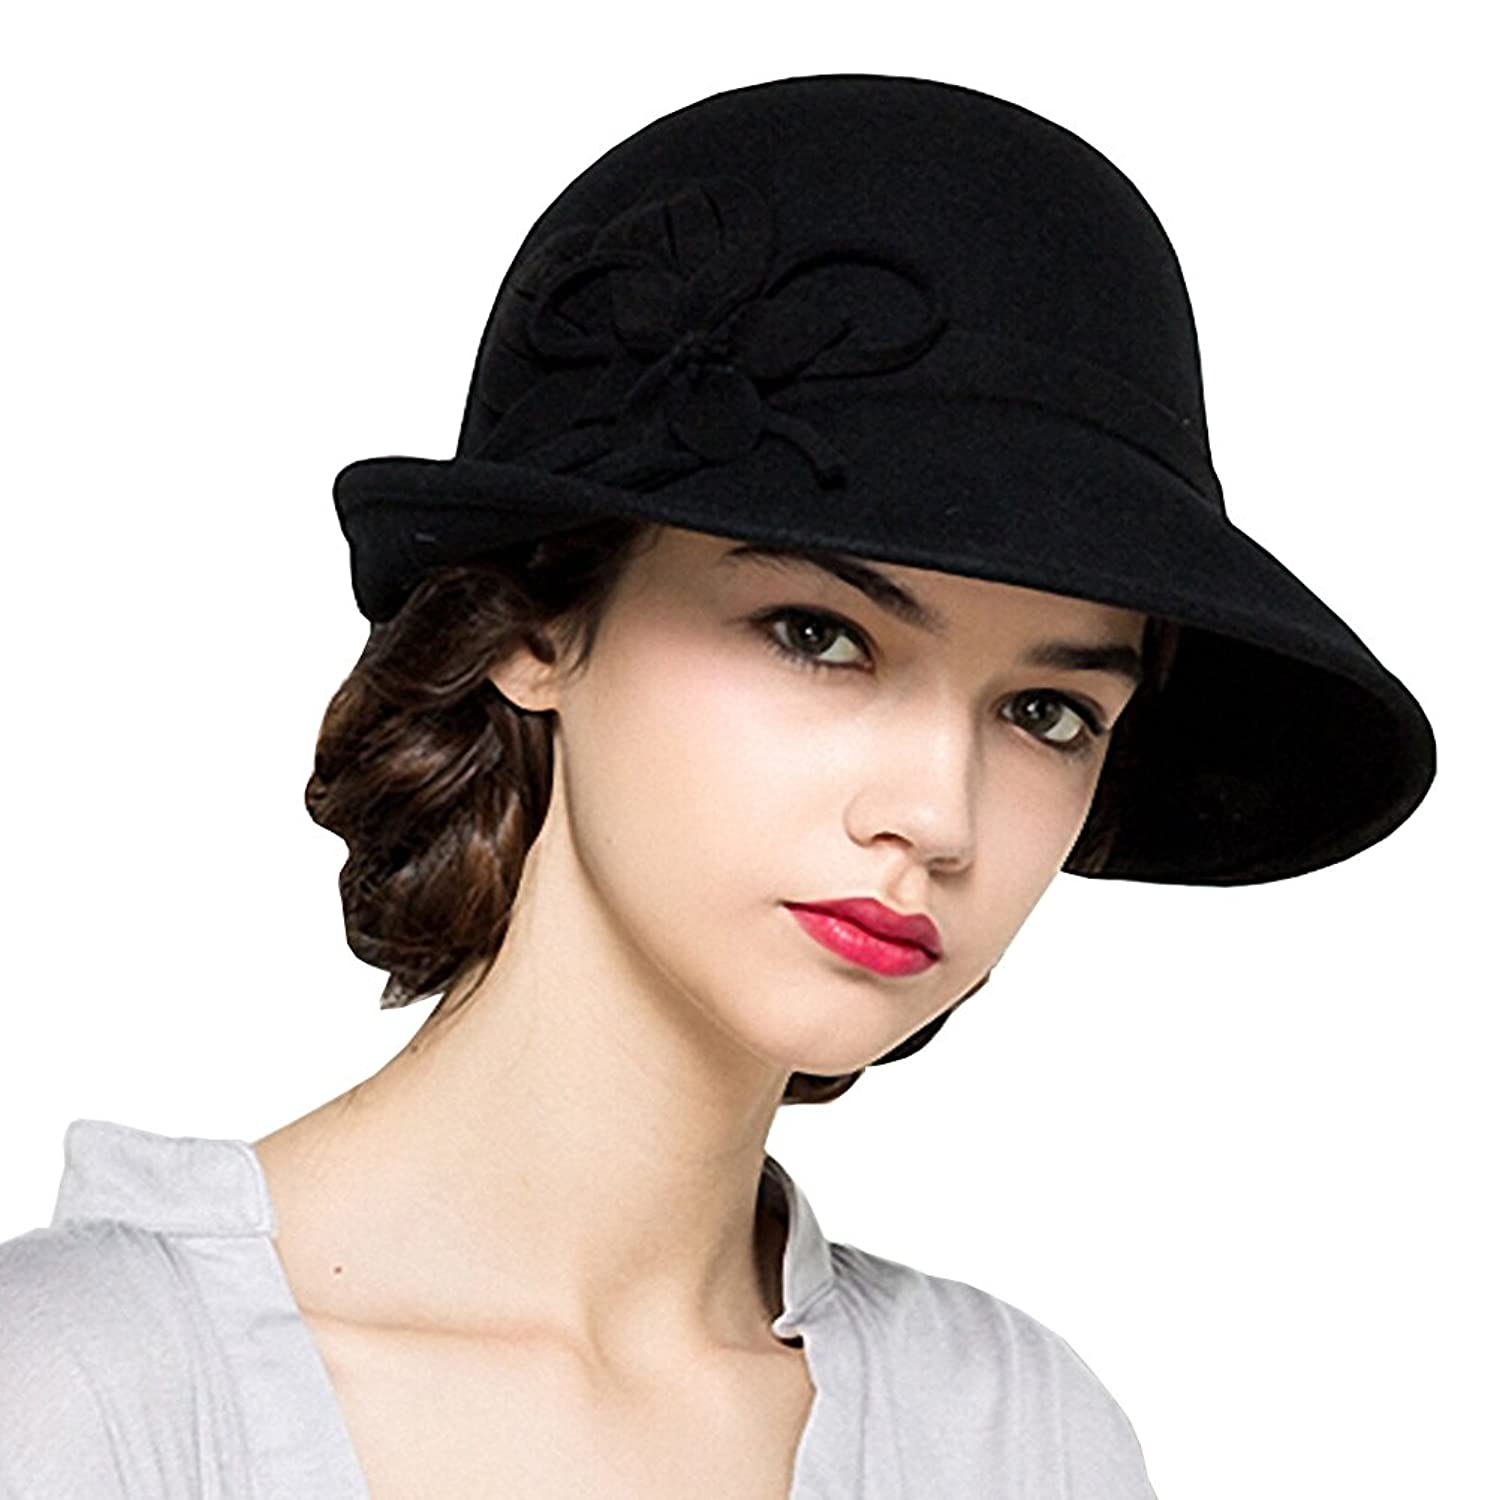 1920s Accessories | Great Gatsby Accessories Guide Maitose Womens Wool Felt Flowers Church Bowler Hats $31.10 AT vintagedancer.com